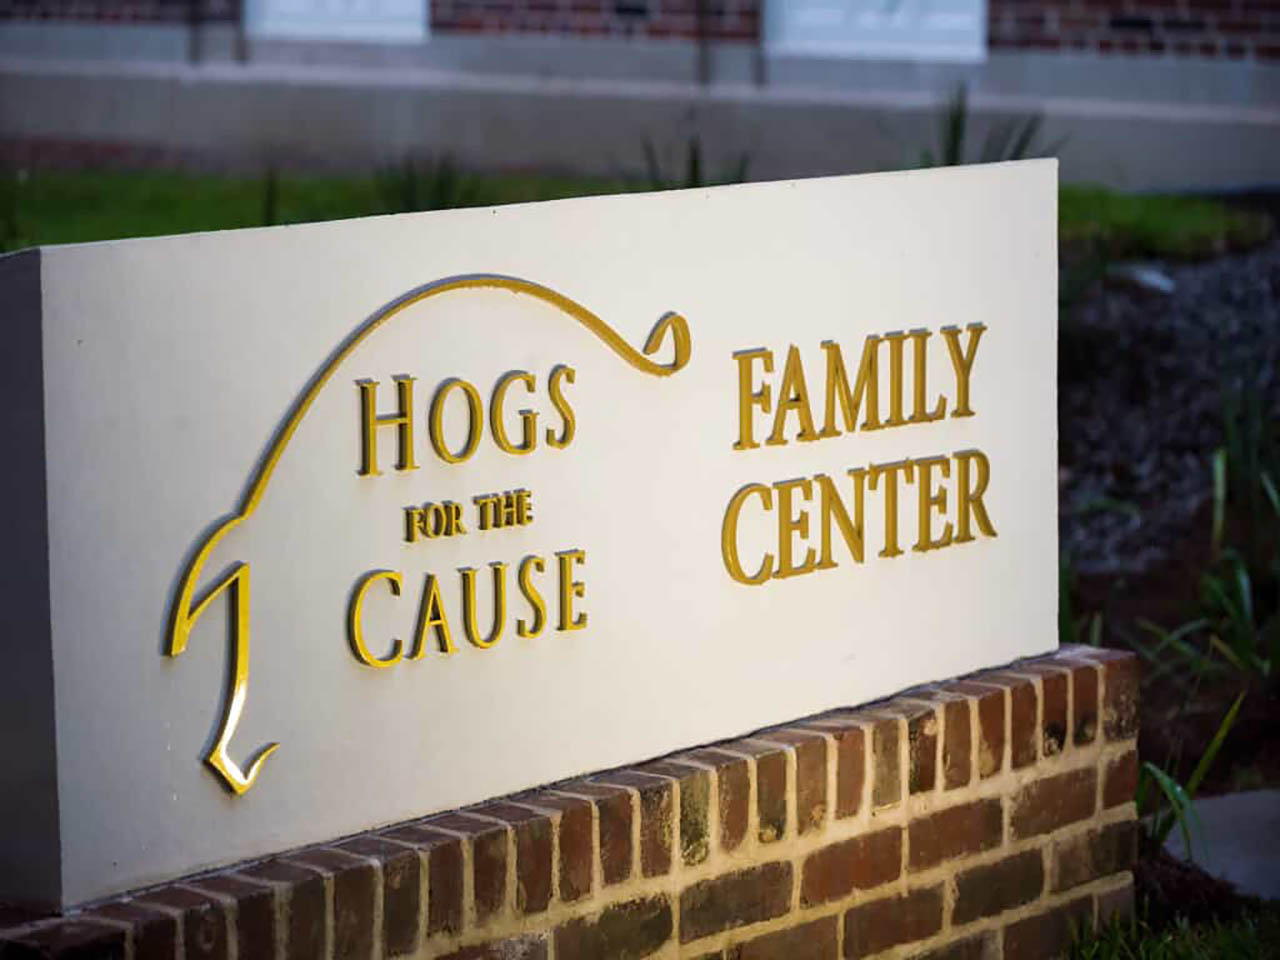 Hogs for the Cause Family Center